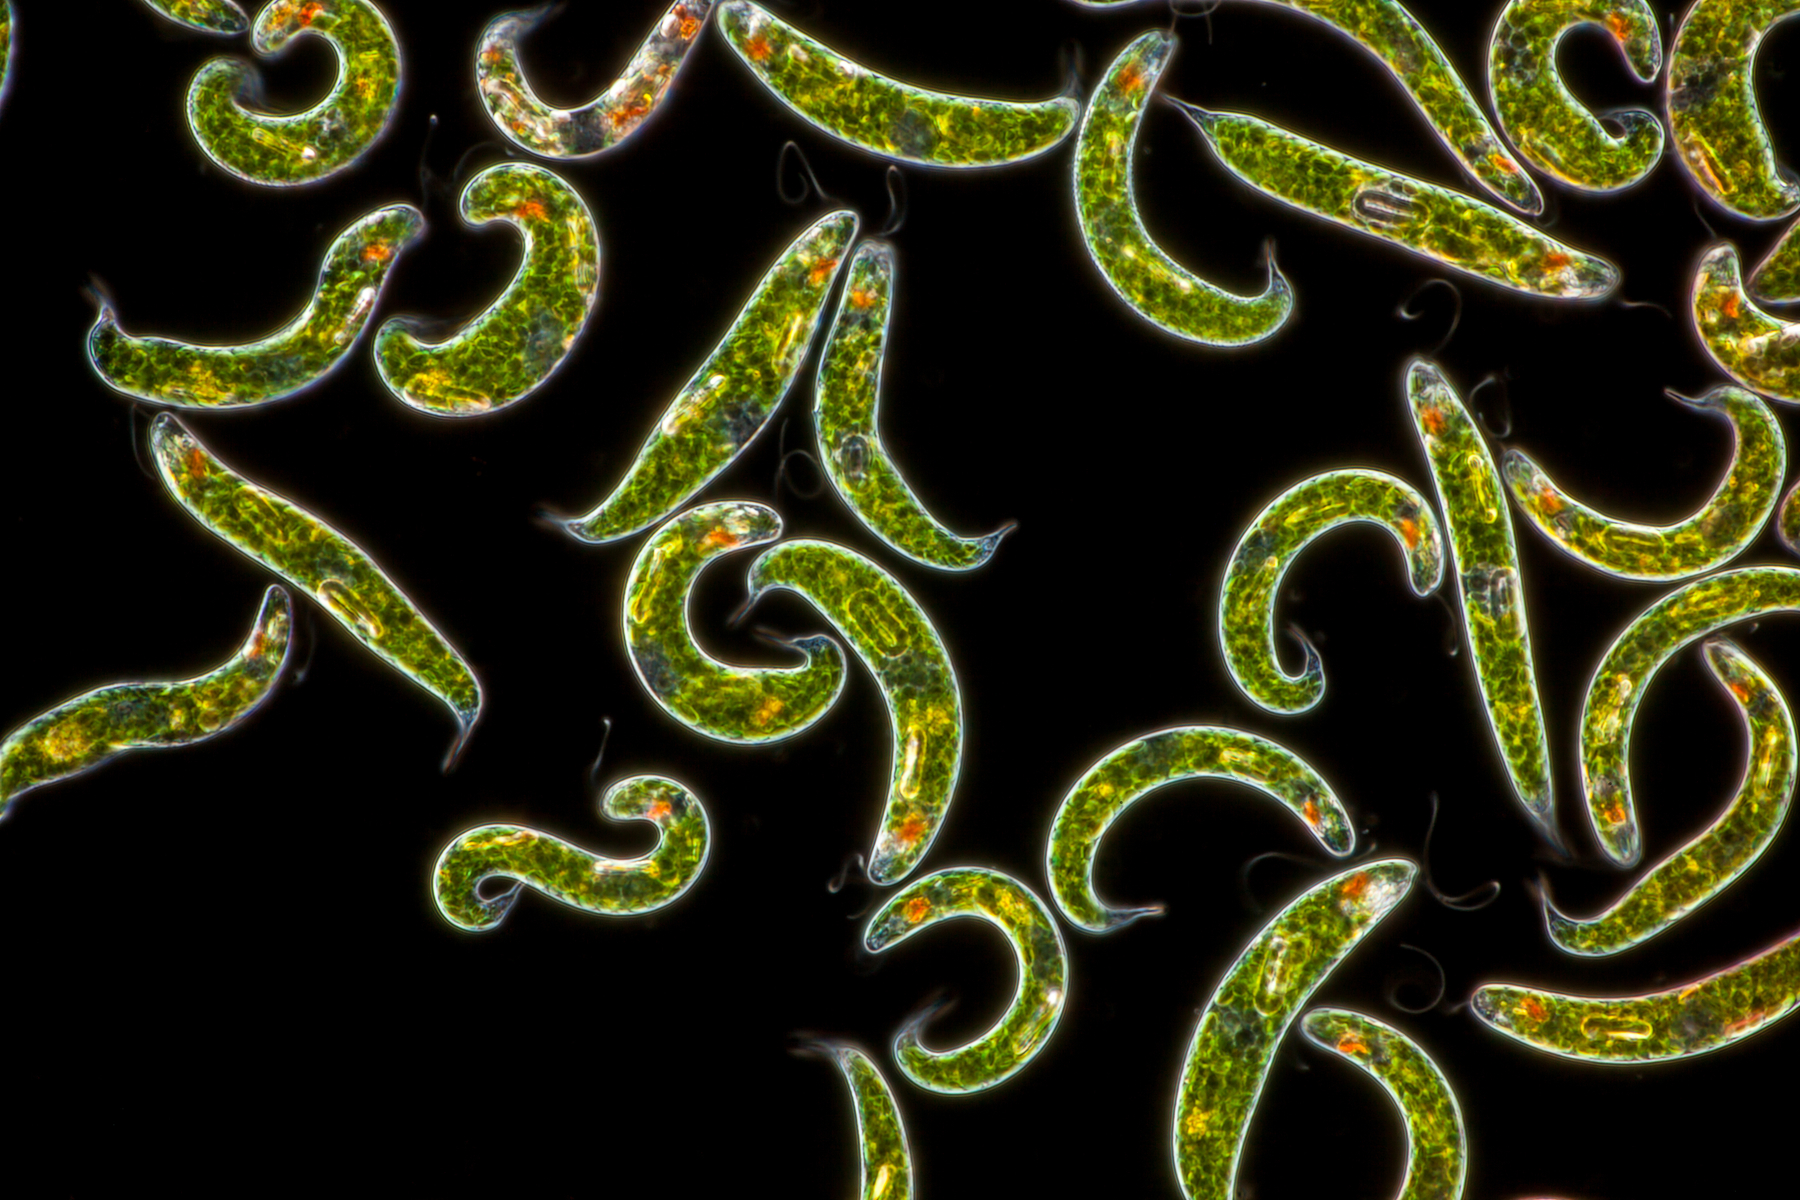 Image of bright green single-celled organisms on a black background, arranged randomly